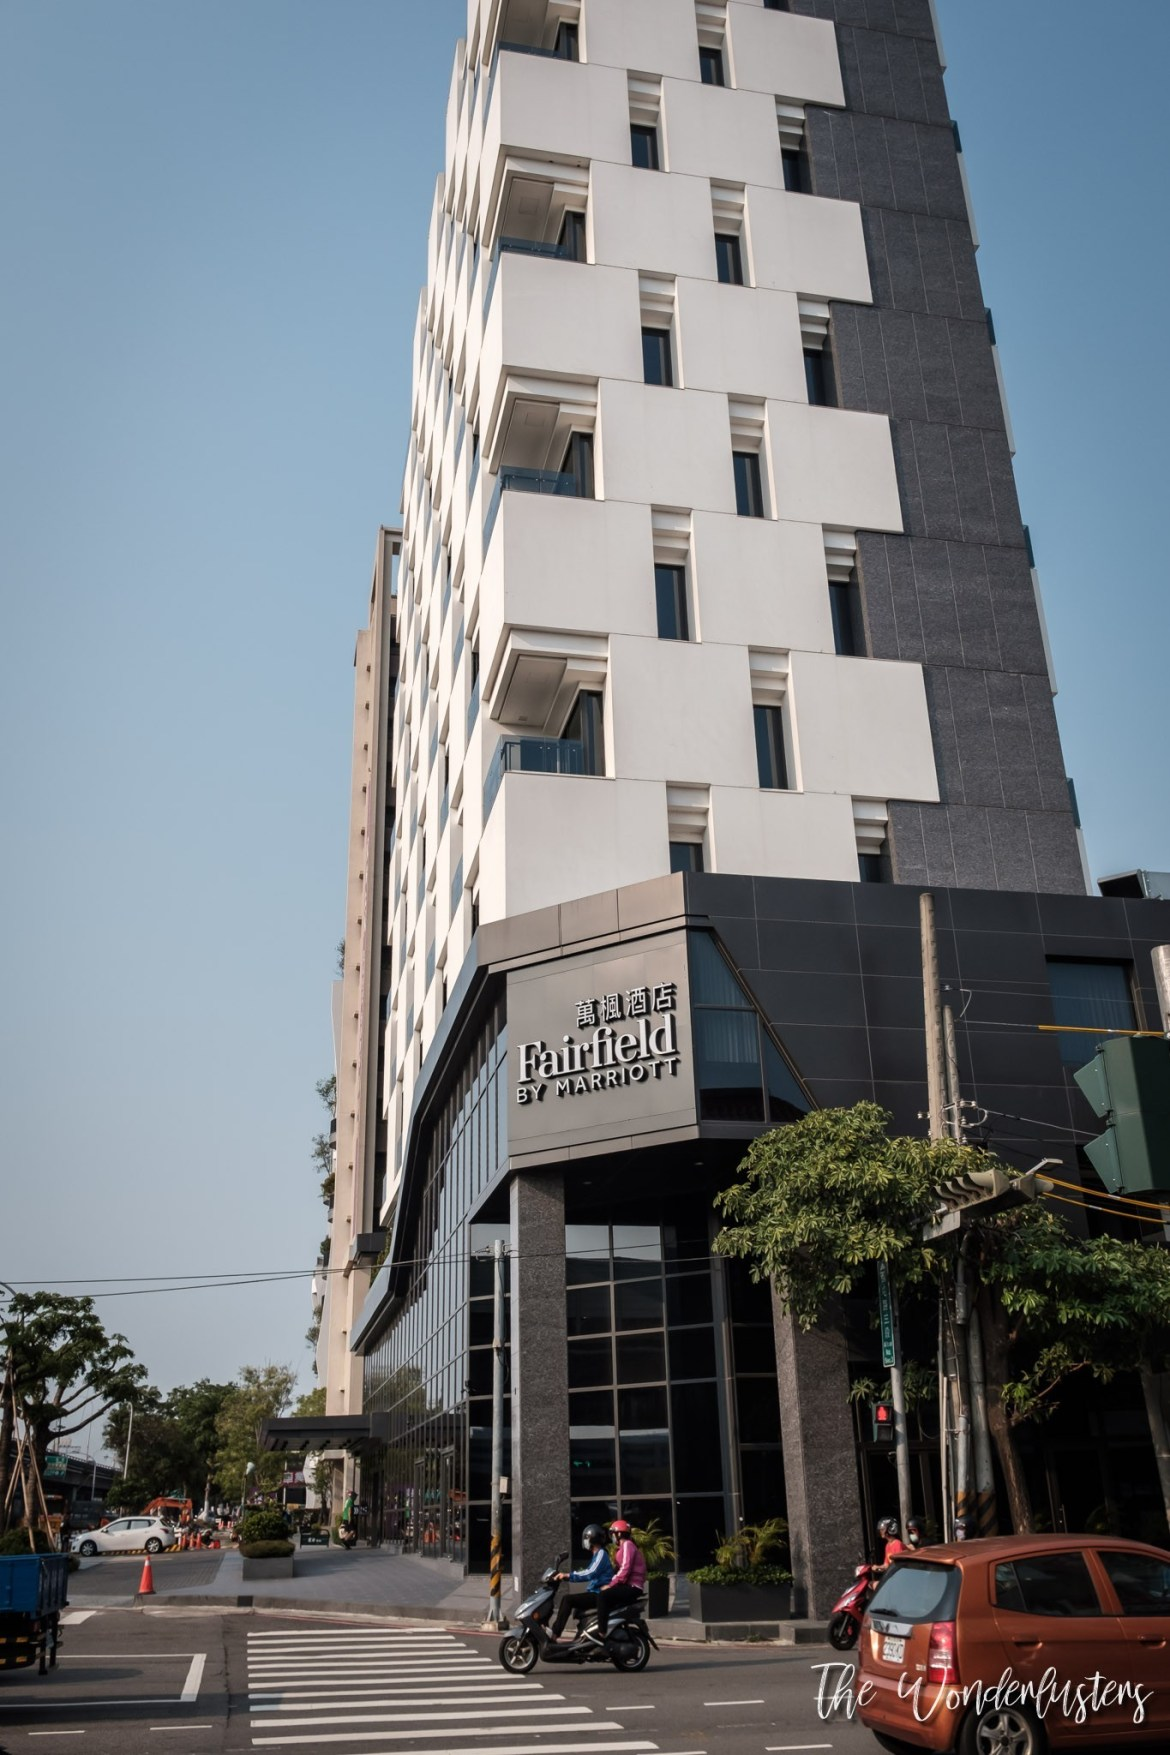 Fairfield by Marriott Taichung